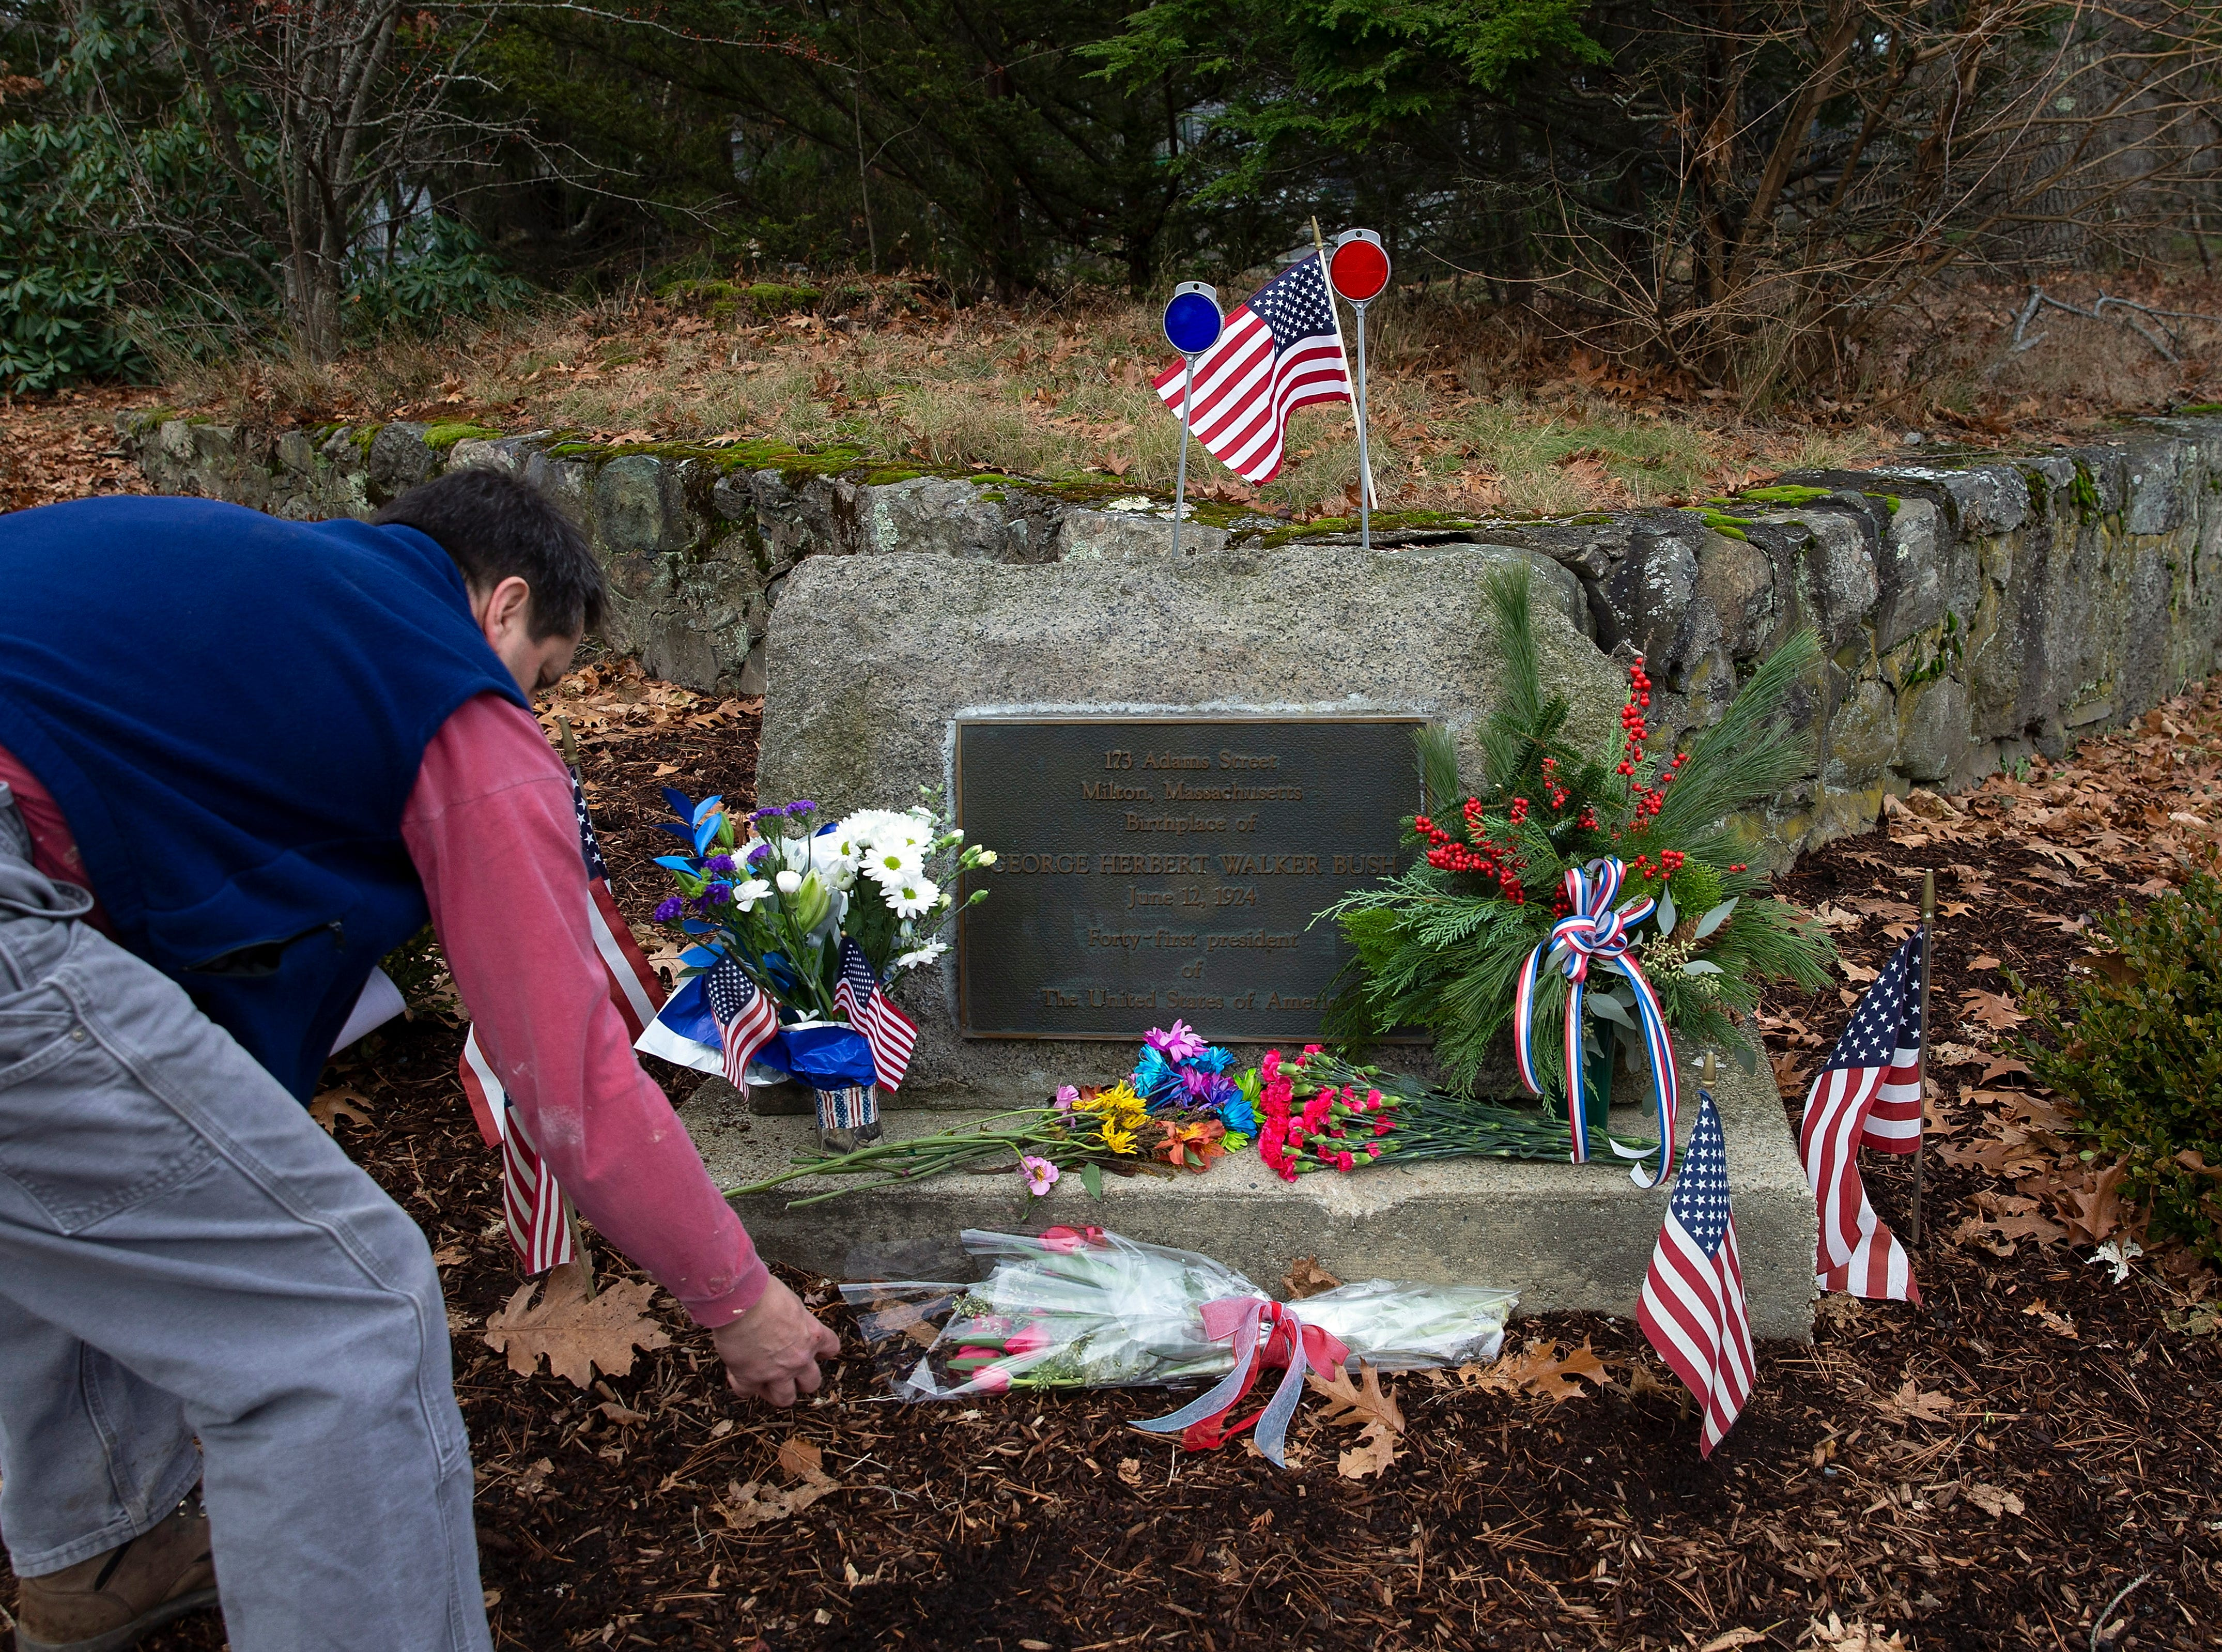 A passer-by cleans off the historical marker near the birth home of former United States President George H. W Bush in Milton, Mass. on Dec. 1, 2018.